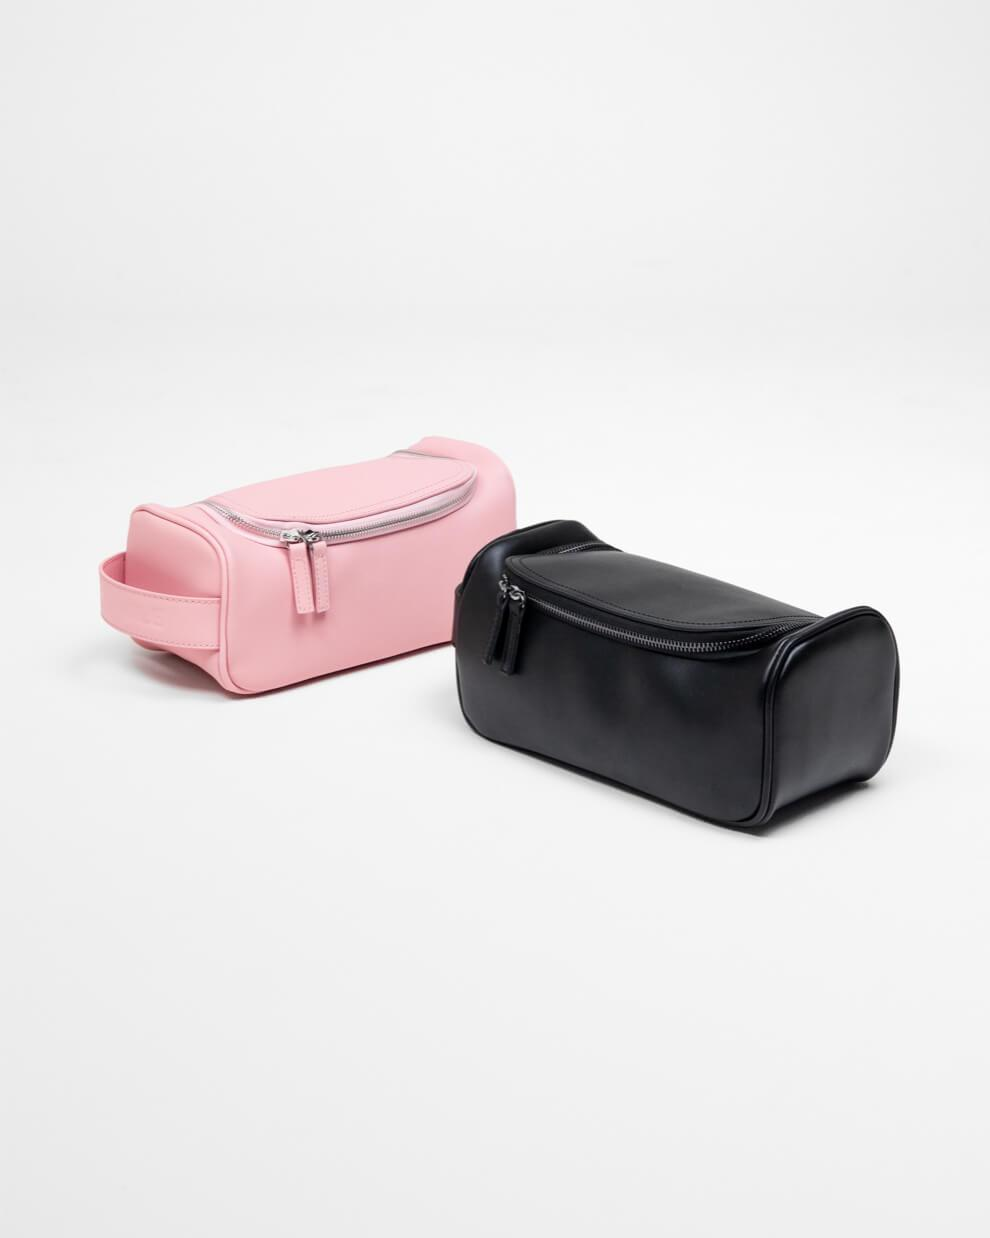 The HiSmile Toiletry Bag